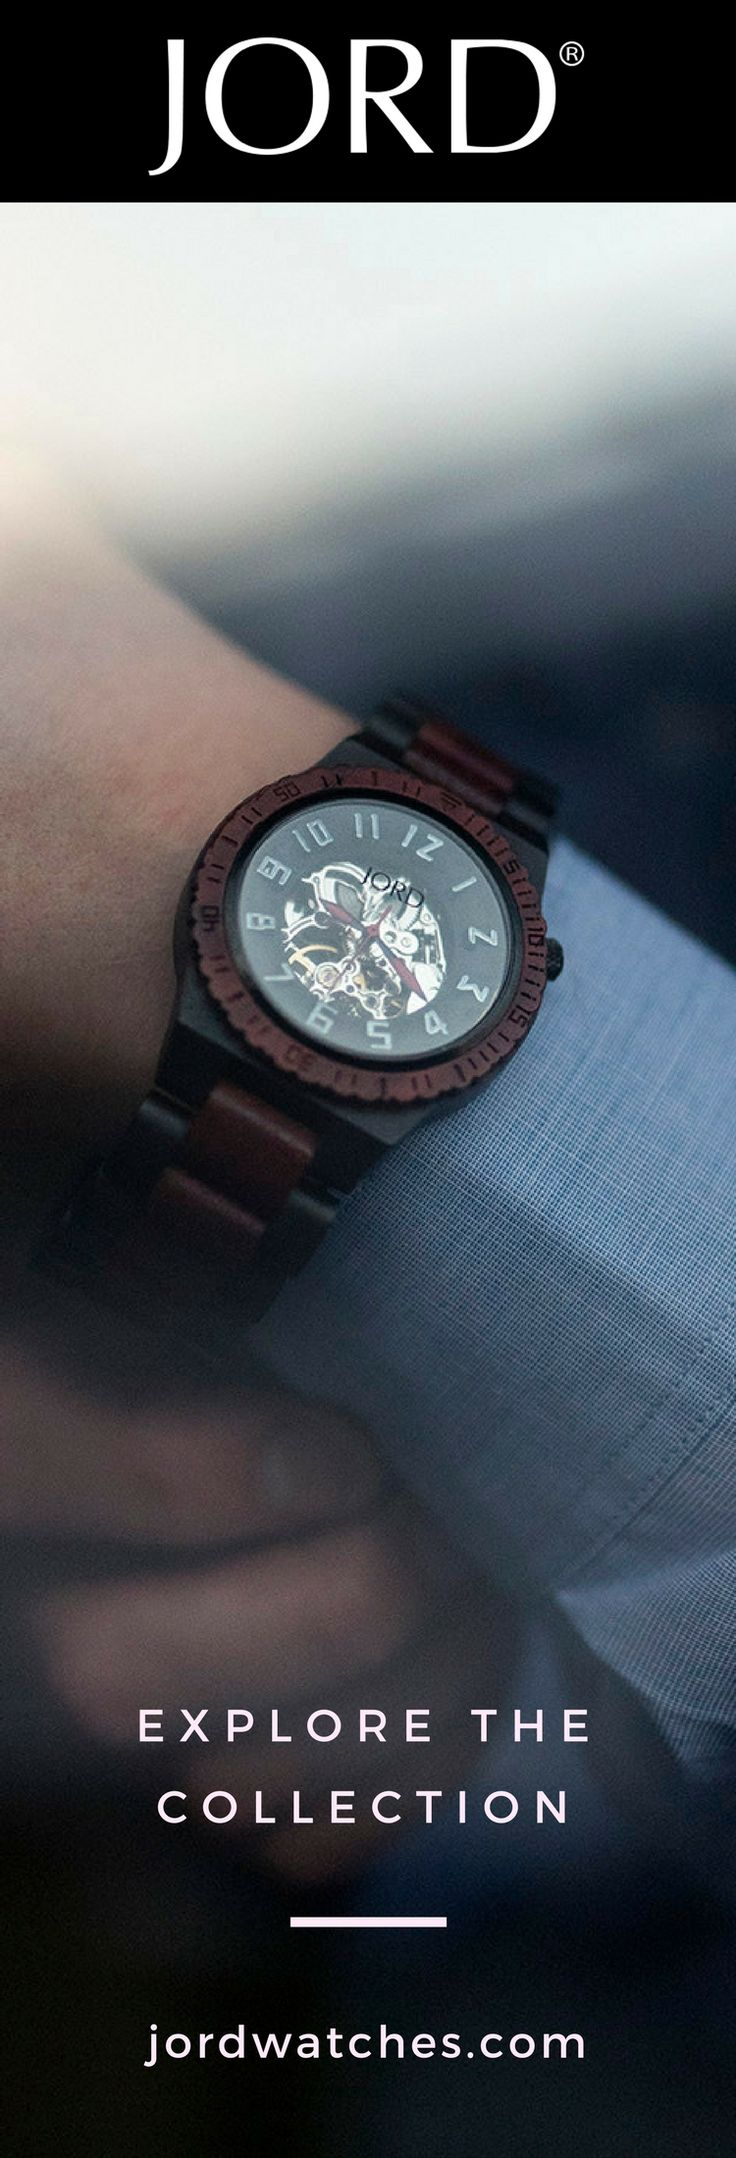 Analog watches are trending again, lucky for us - they've gotten a material upgrade! Have you seen a wood watch yet? If you haven't already - you will soon. Be the first and find yours at jordwatches.com, the premiere wood watch maker in the market.